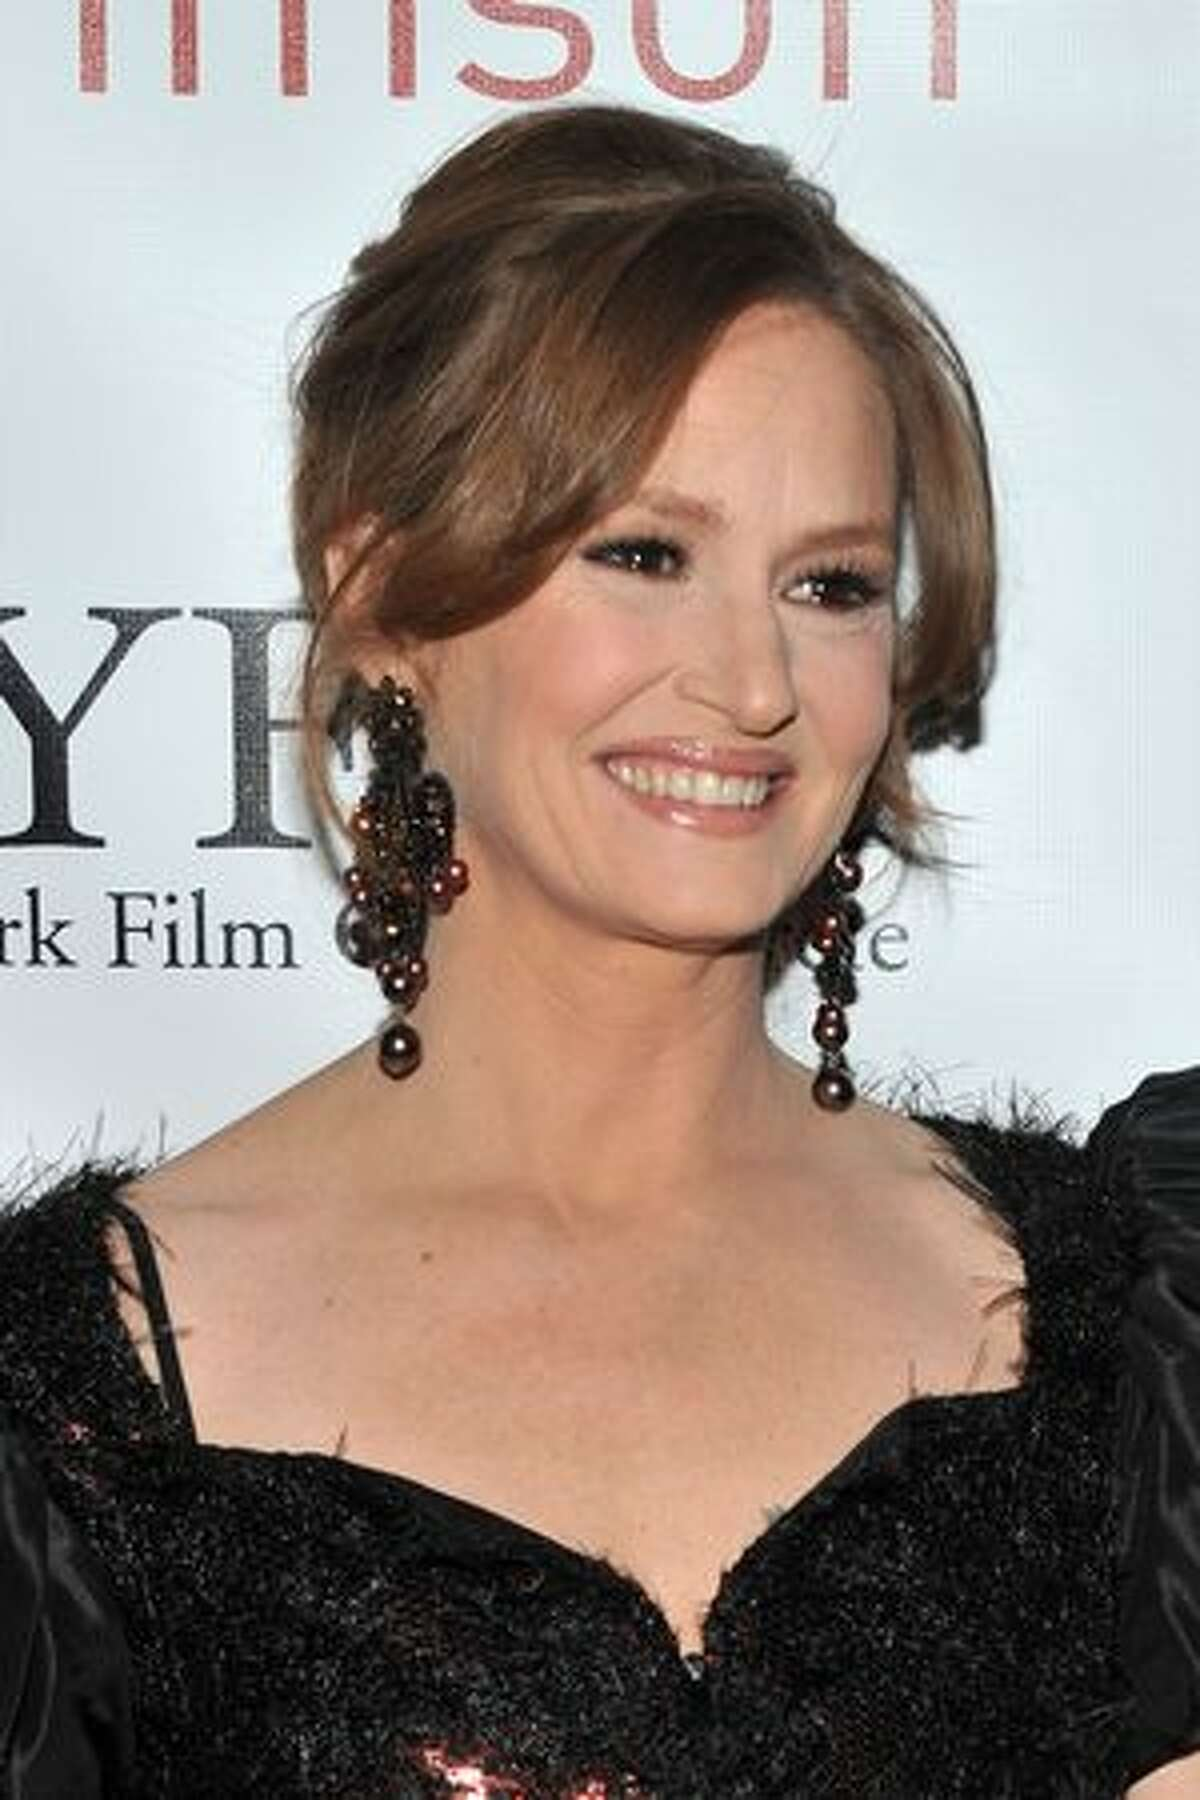 Actress Melissa Leo attends the 2010 New York Film Critics Circle Awards at Crimson in New York City.